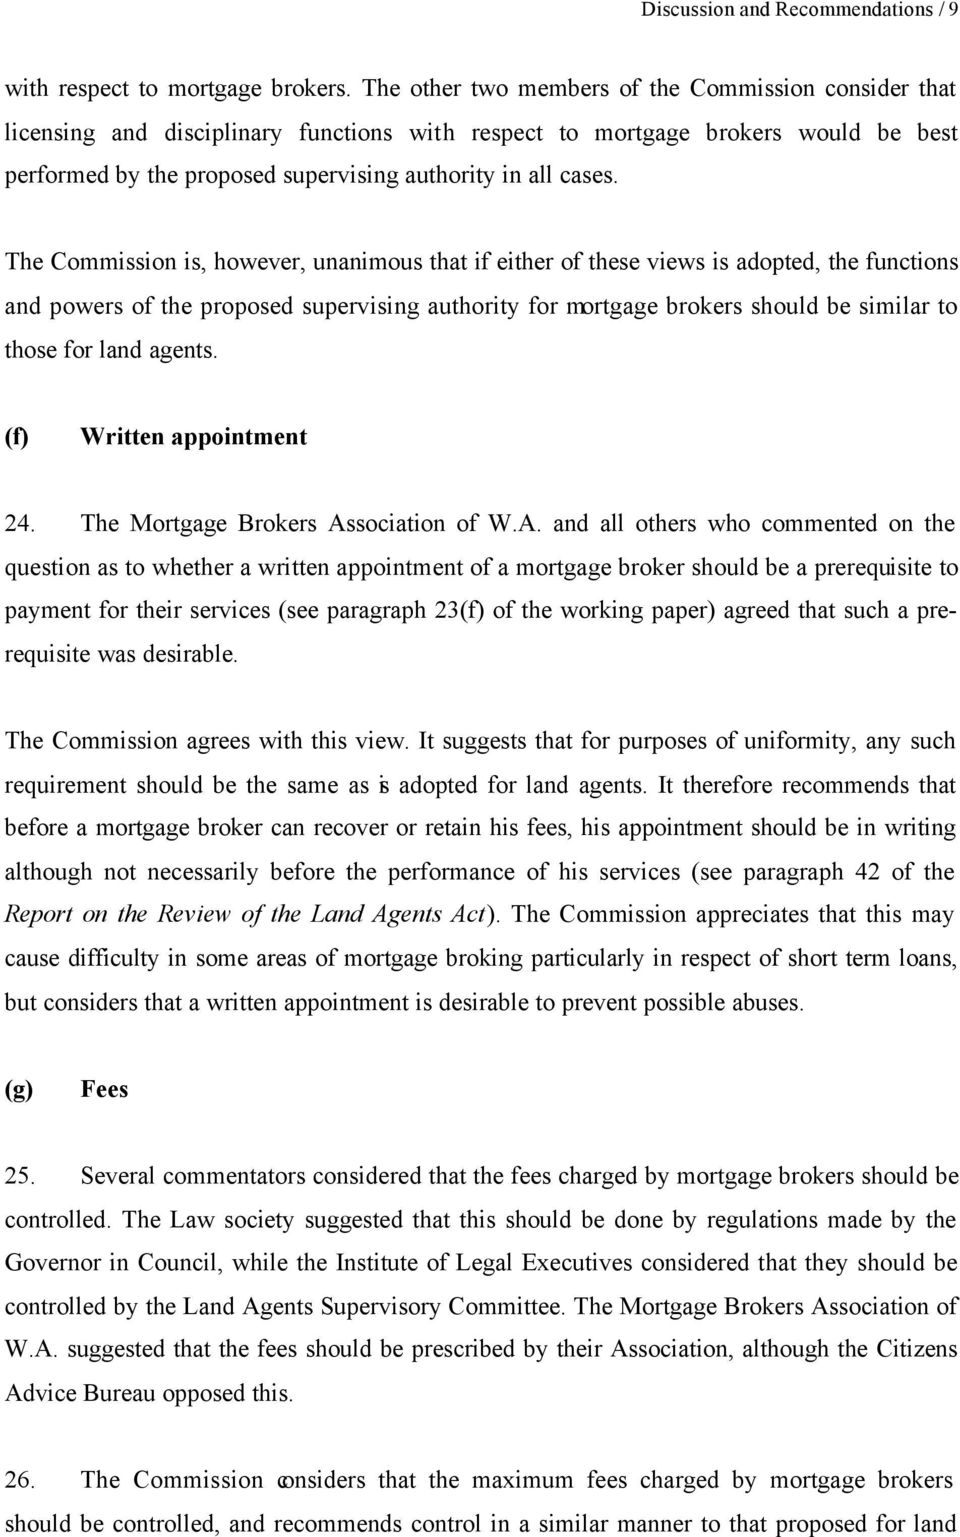 The Commission is, however, unanimous that if either of these views is adopted, the functions and powers of the proposed supervising authority for mortgage brokers should be similar to those for land